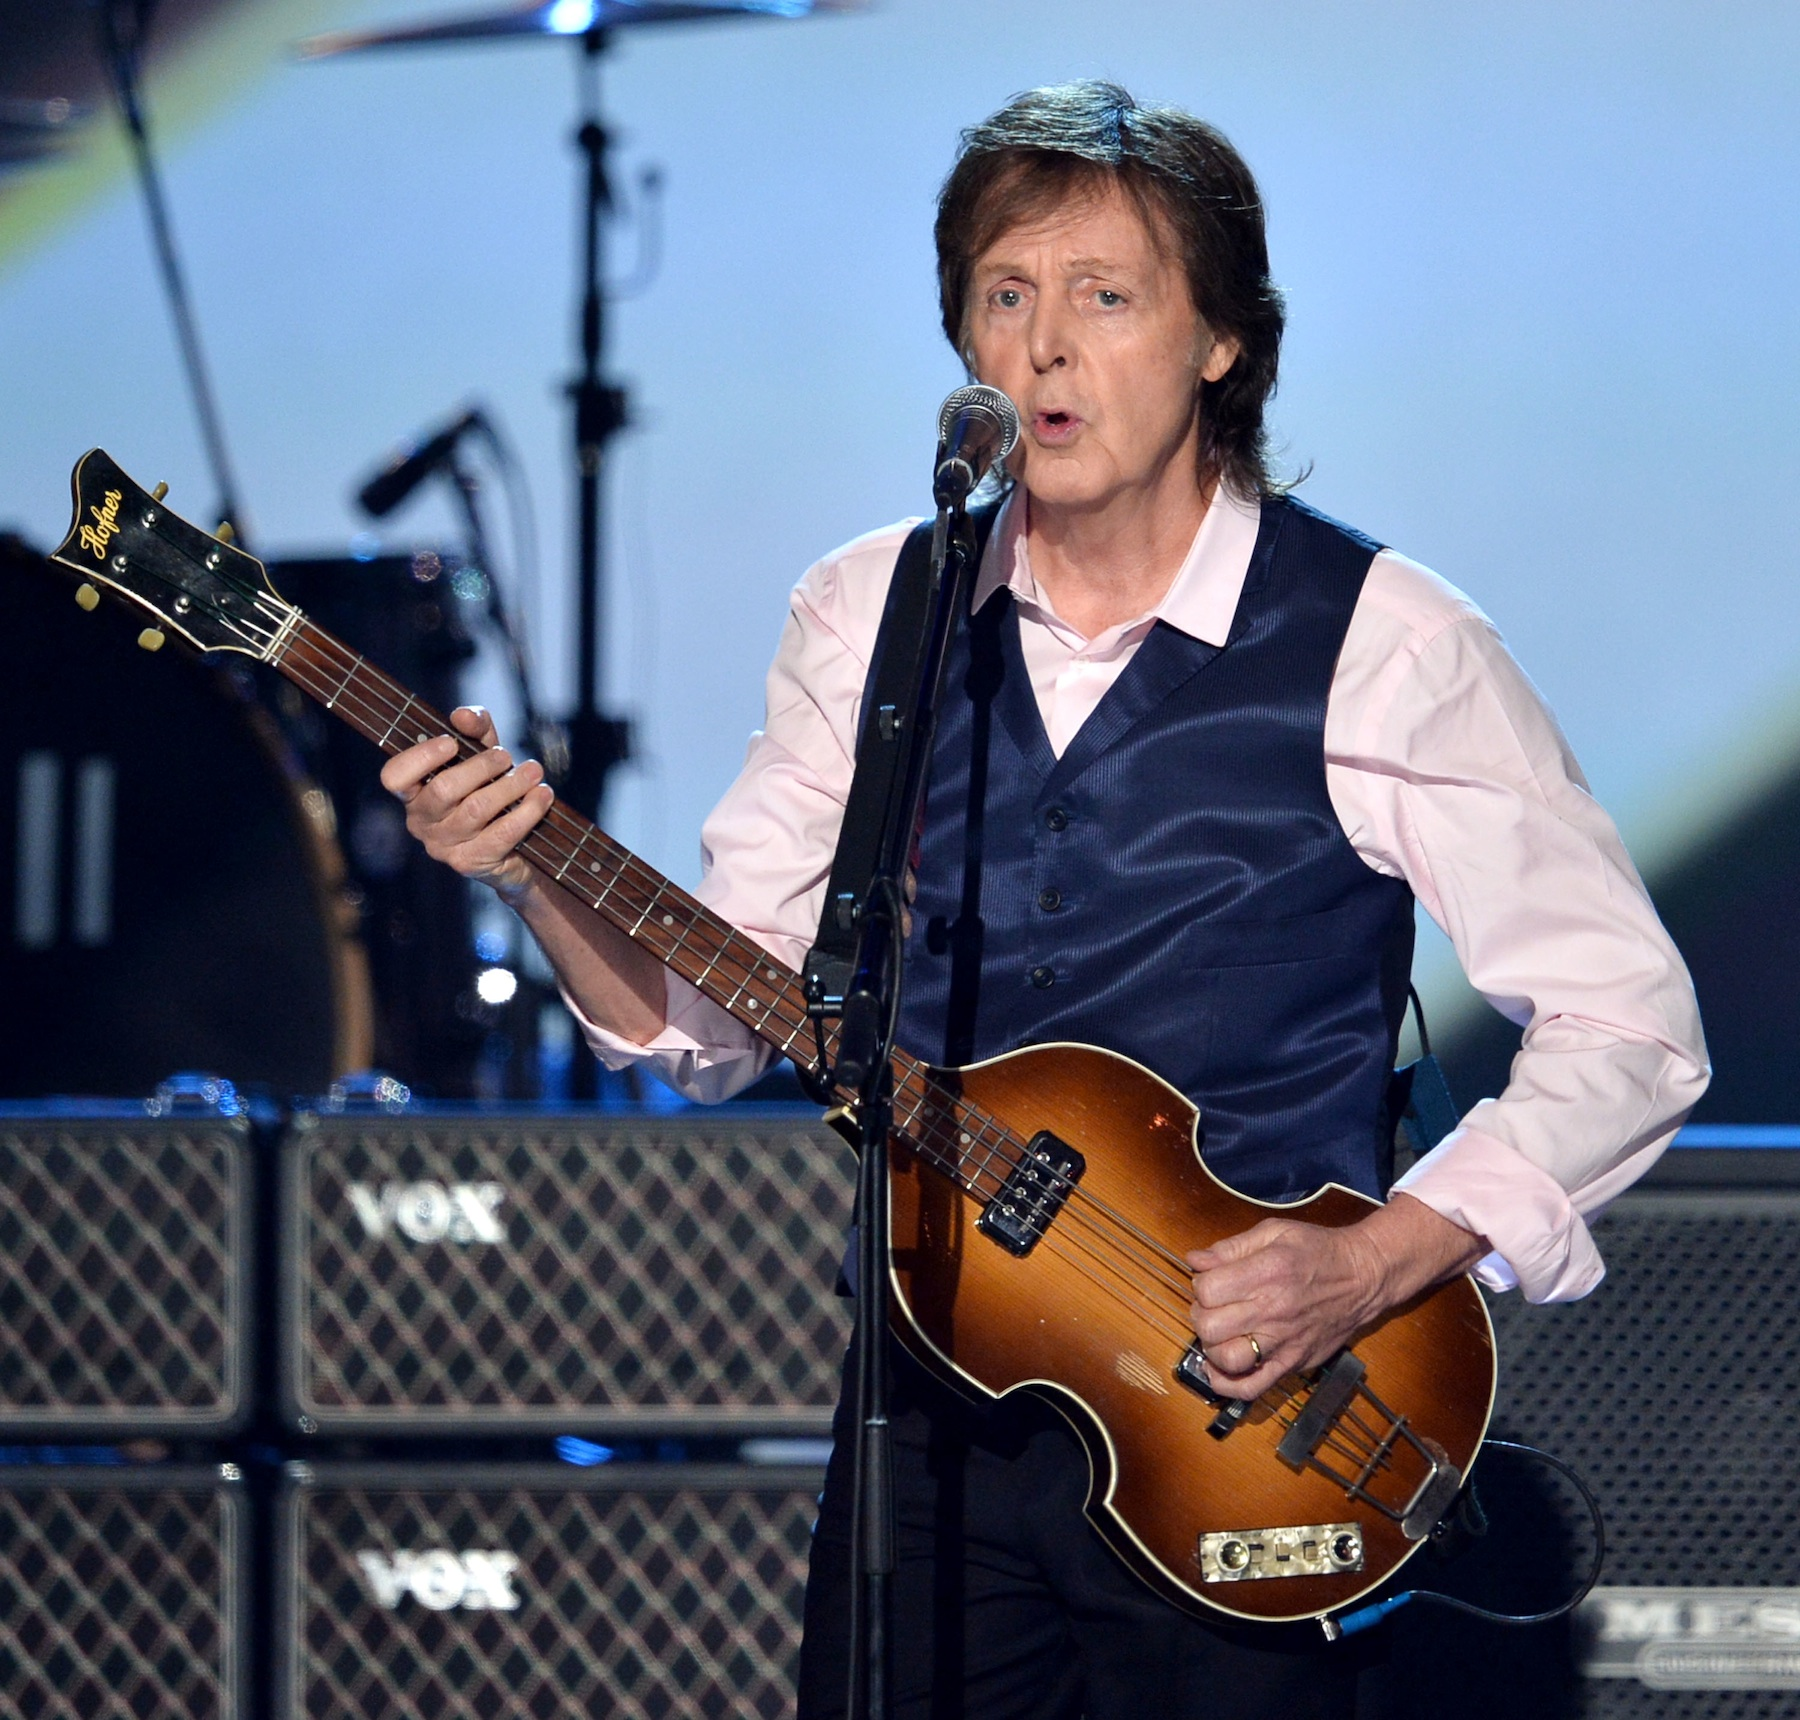 Paul McCartney to Play Candlestick Park's Last Concert